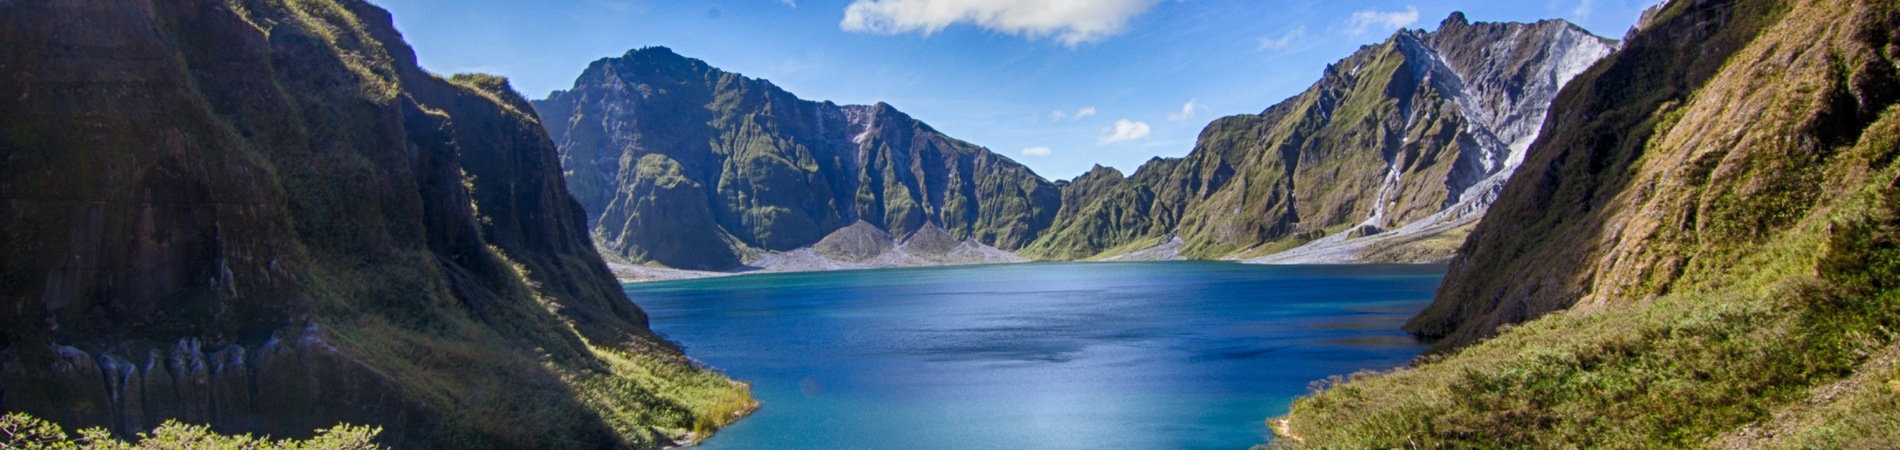 Philippines tourism PHI Mt. Pinatubo Crater header